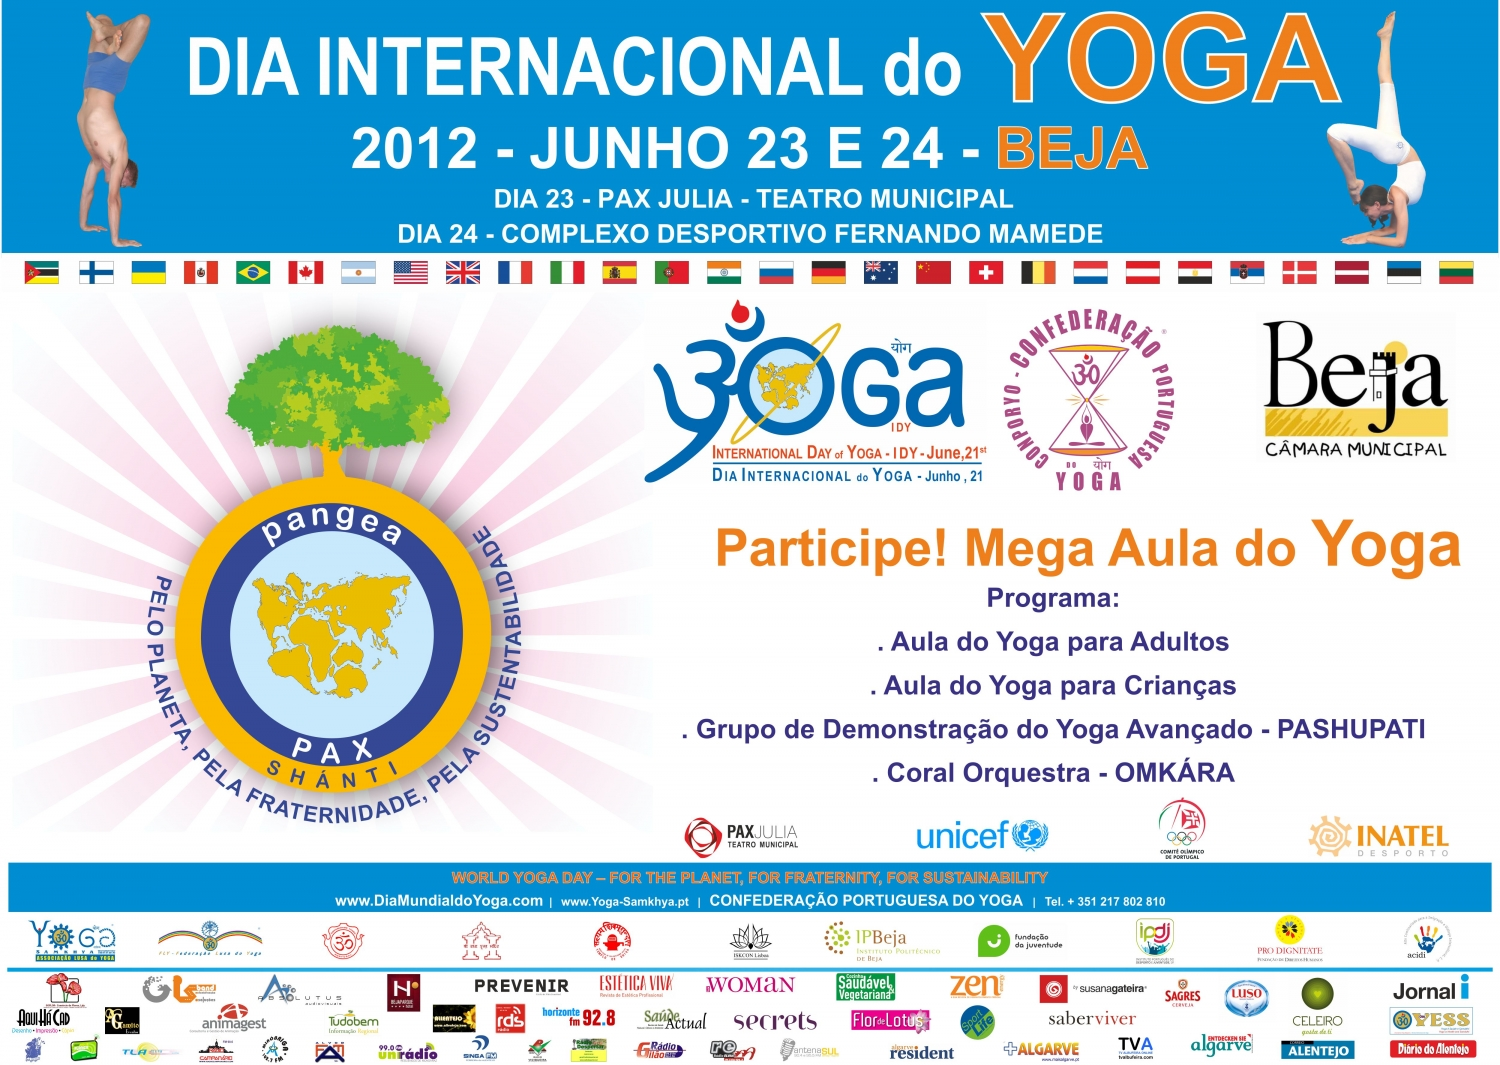 International Day of Yoga - IDY - 2012, Beja